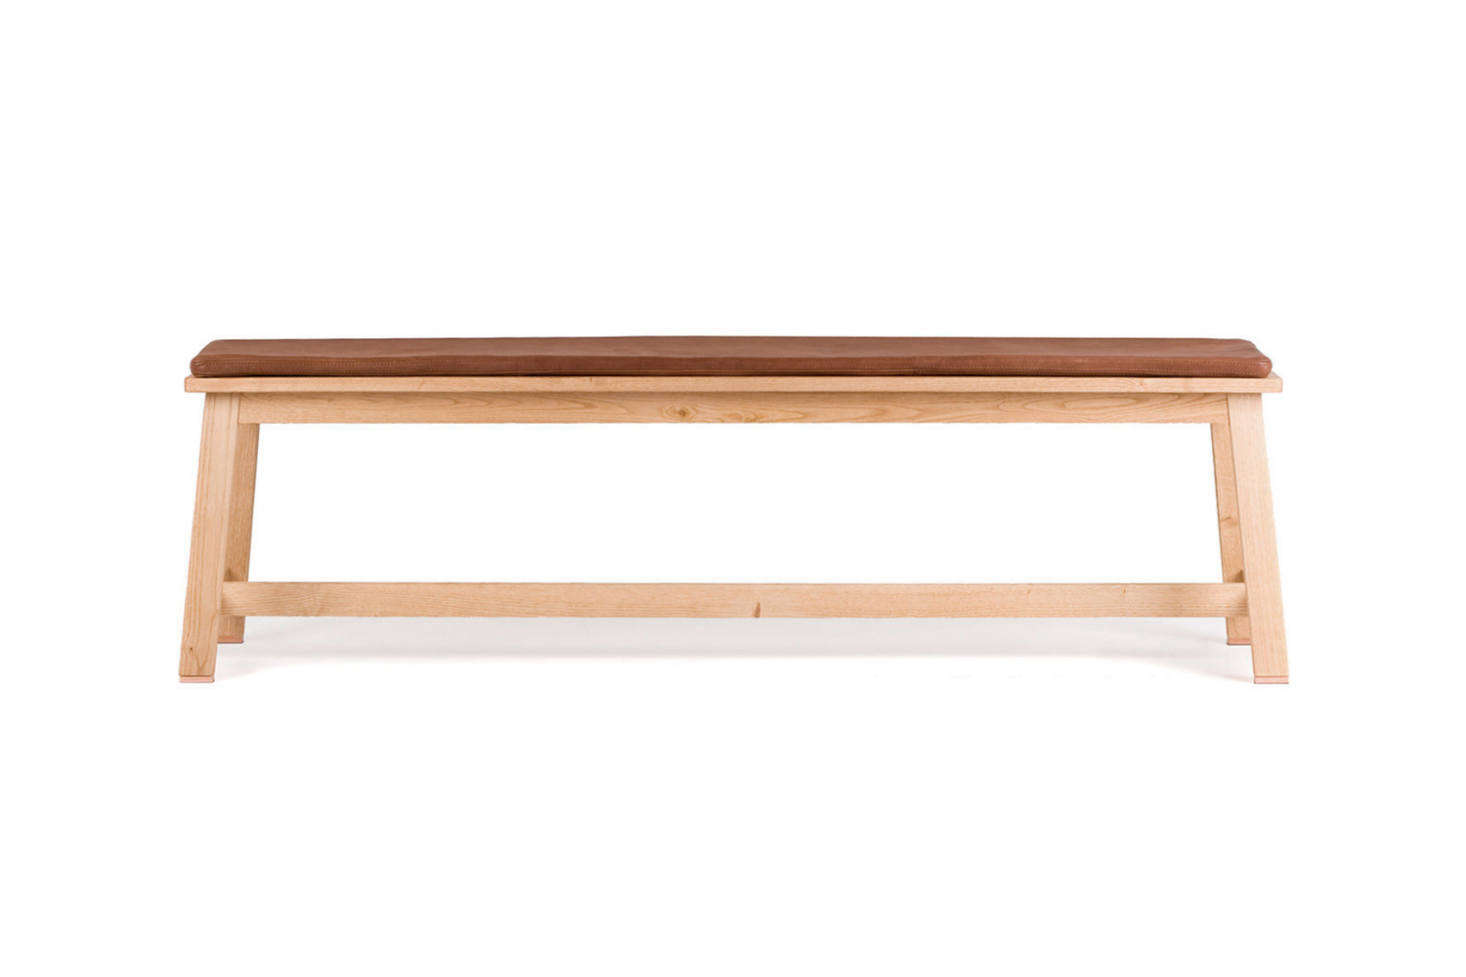 The dining bench is the Studioilse 443 Bench with a leather seat cushion; $src=